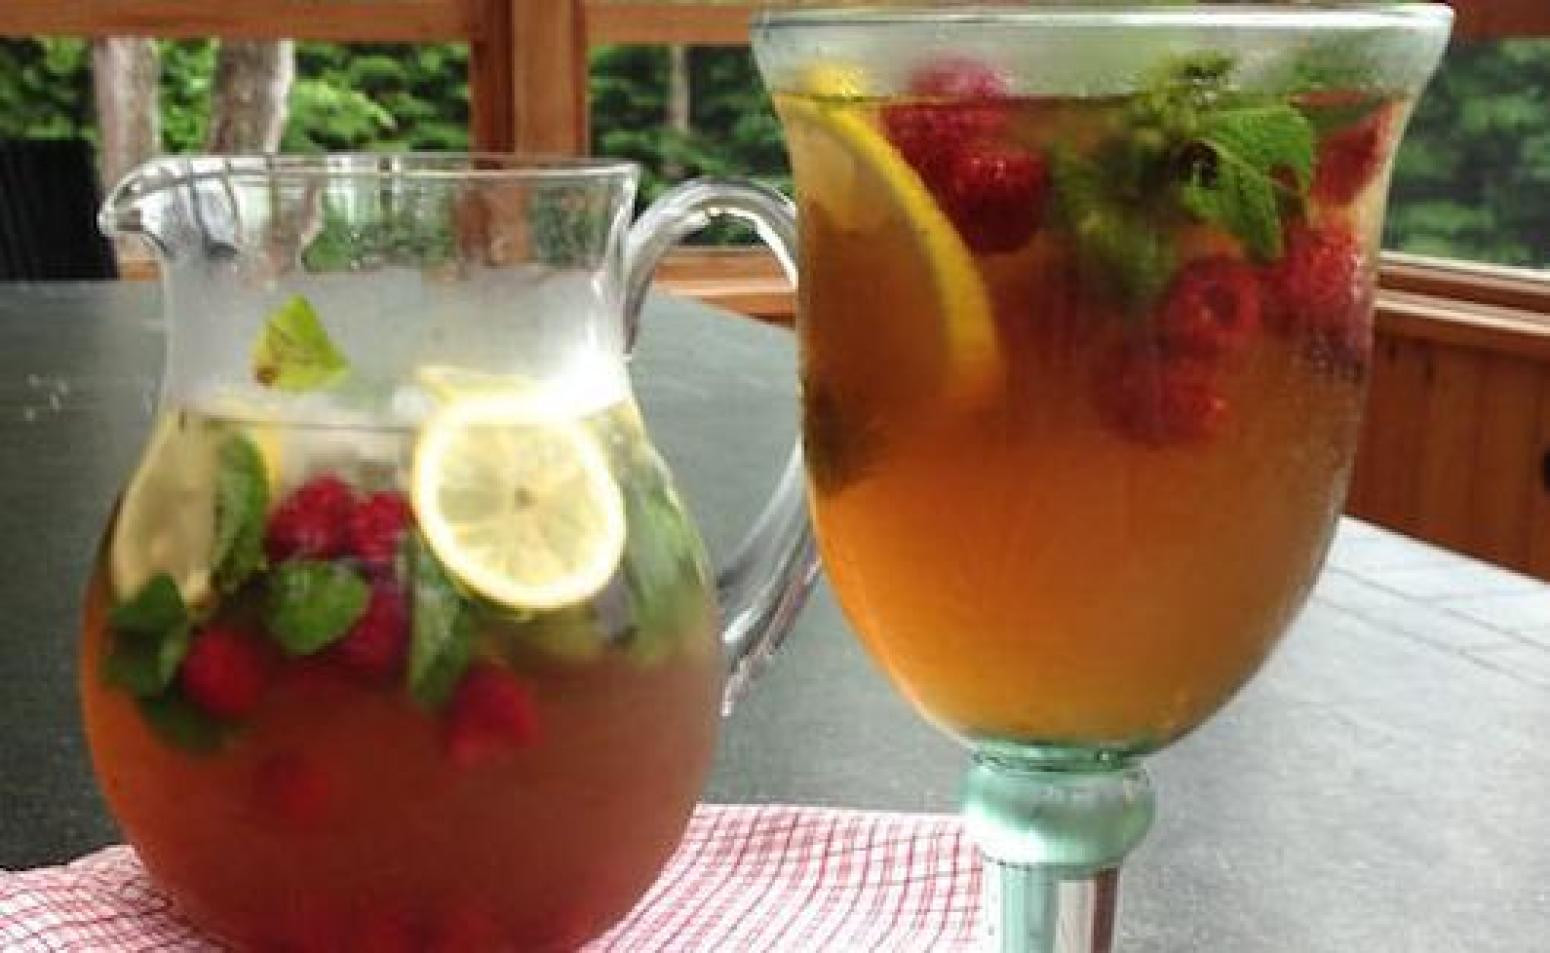 Diabetic Alcoholic Drink Recipes  Diabetic Kind of Moroccan Raspberry Mint Refresher Recipe